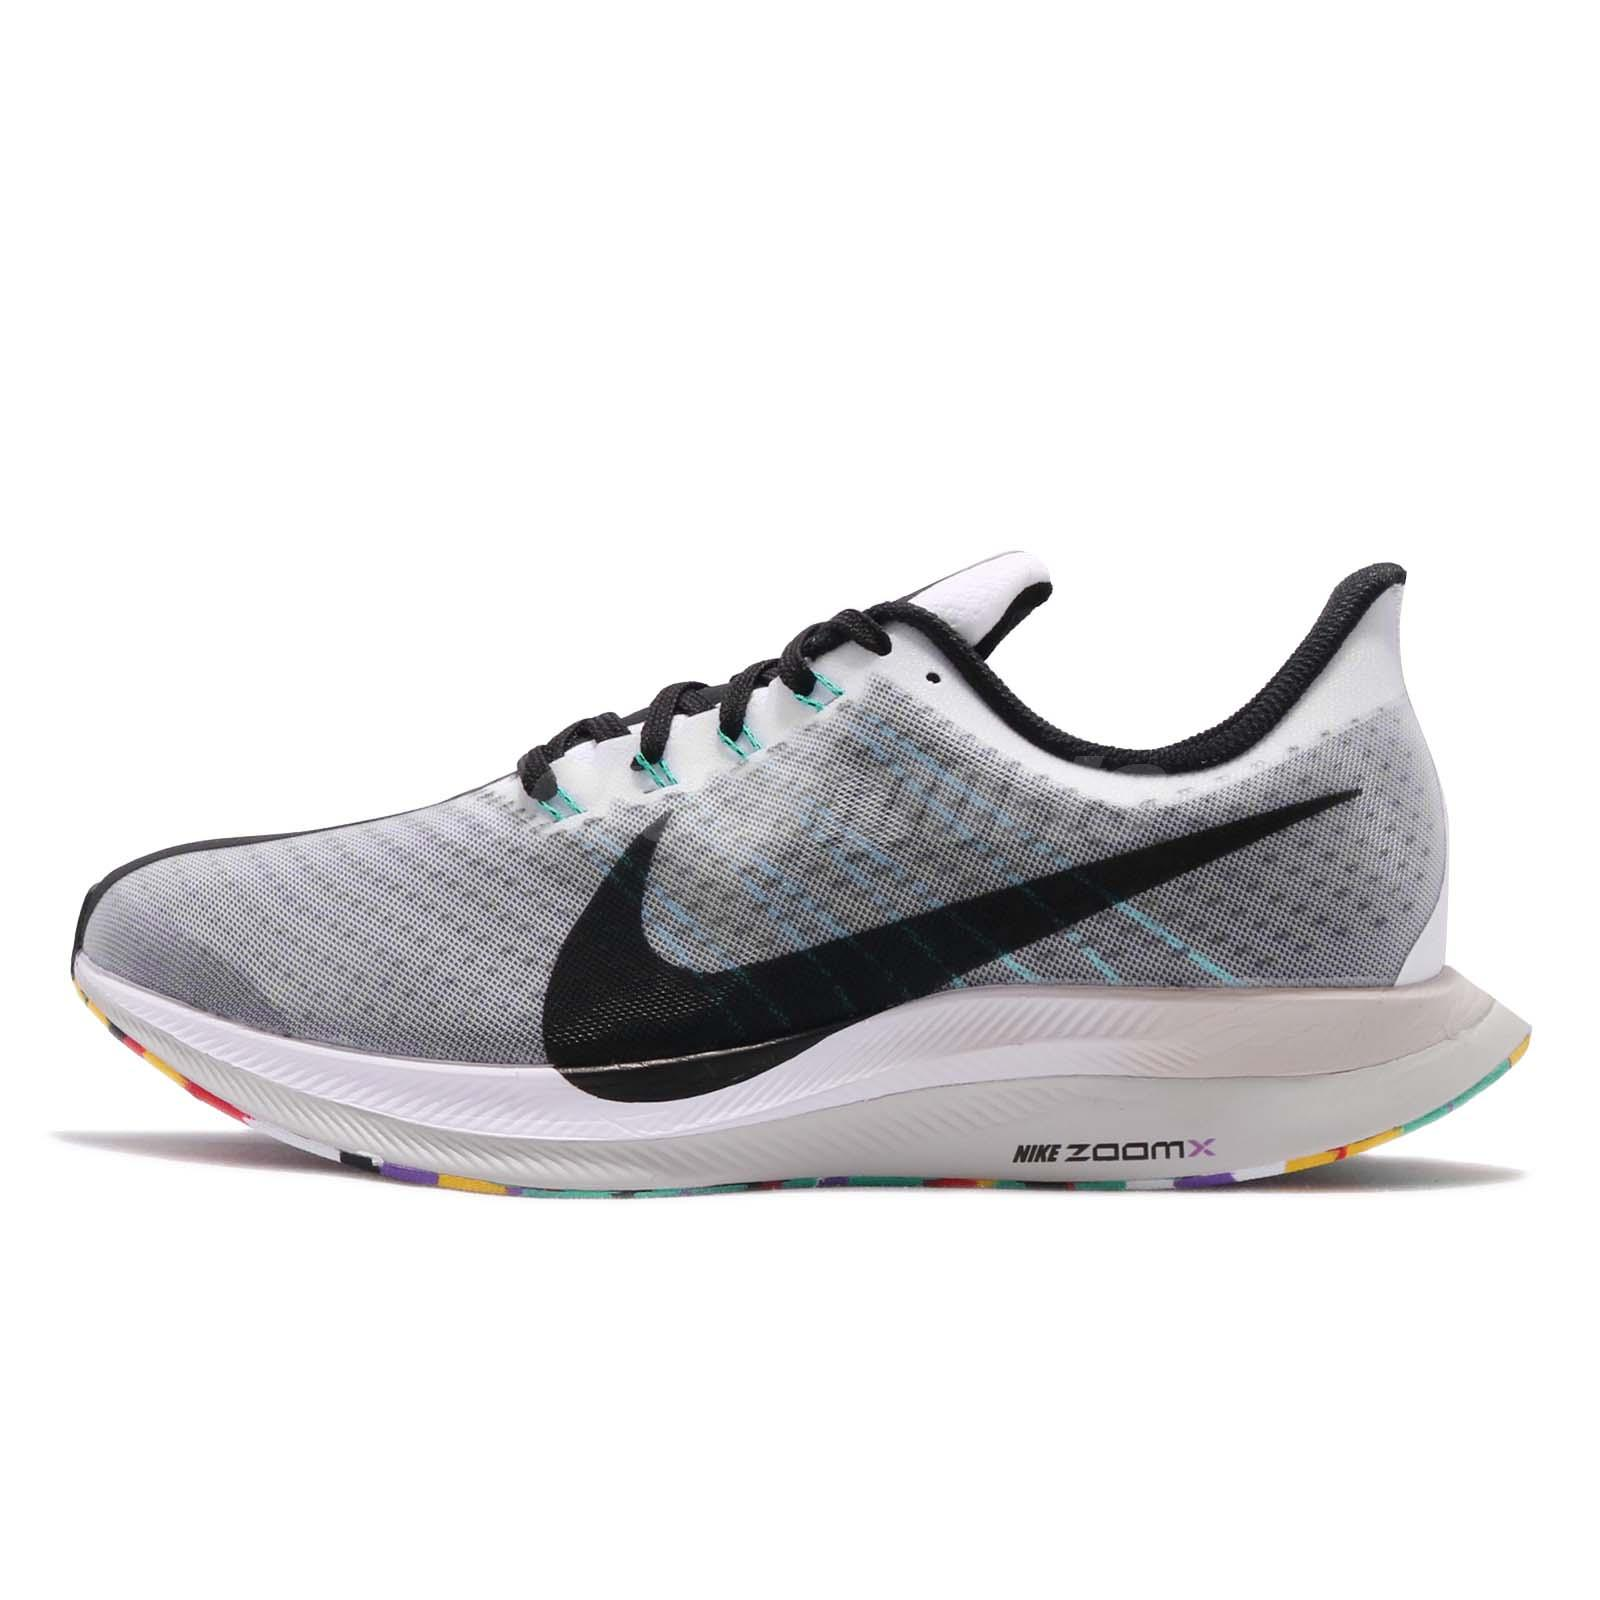 a2363ab13fd Nike Zoom Pegasus 35 Turbo White Black Hyper Jade Men Running Shoes  AJ4114-101